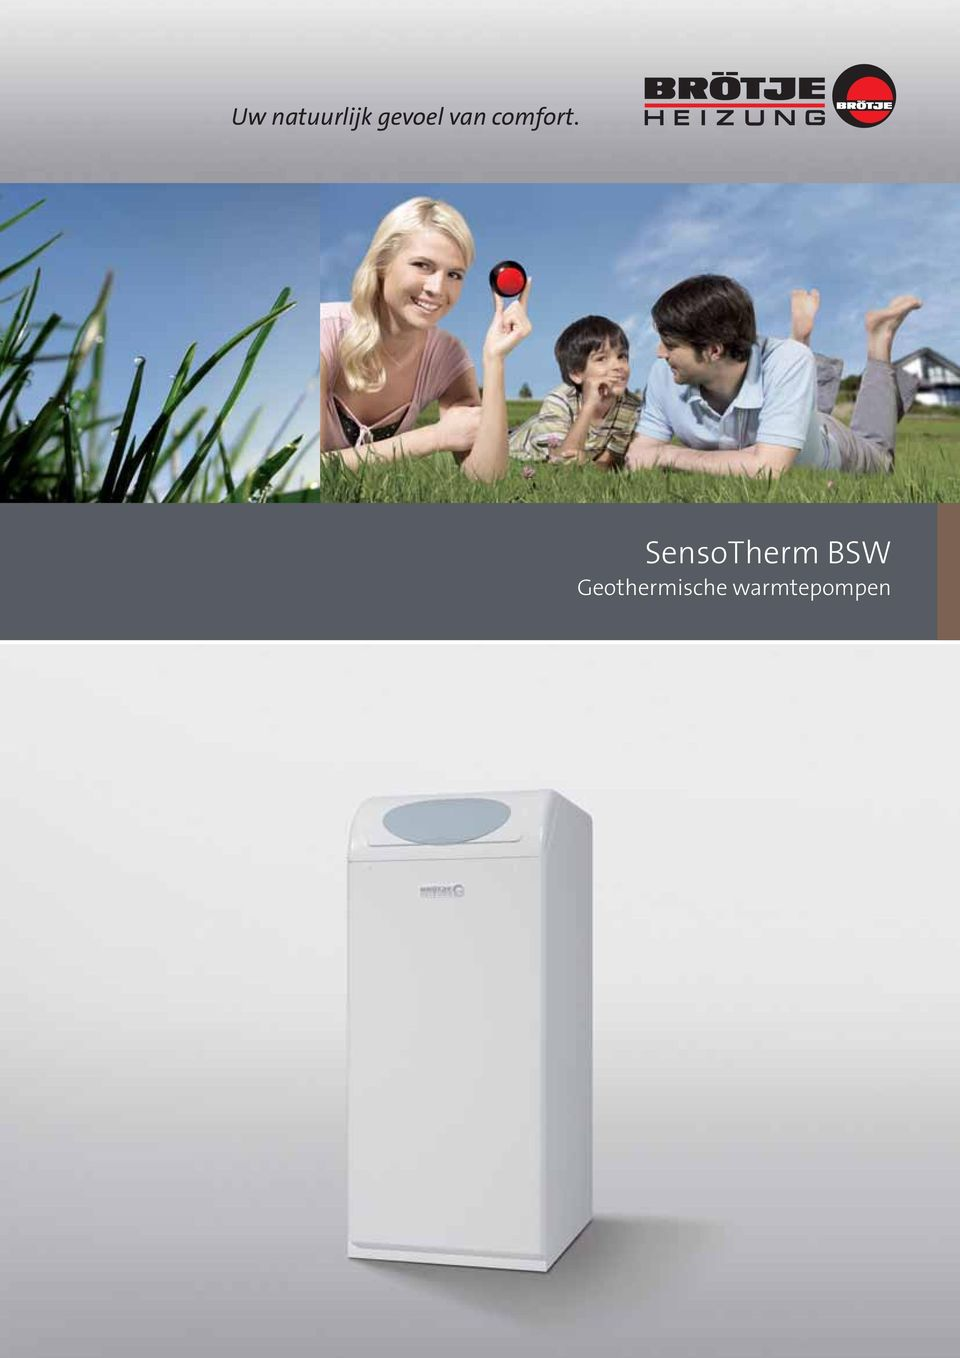 SensoTherm BSW